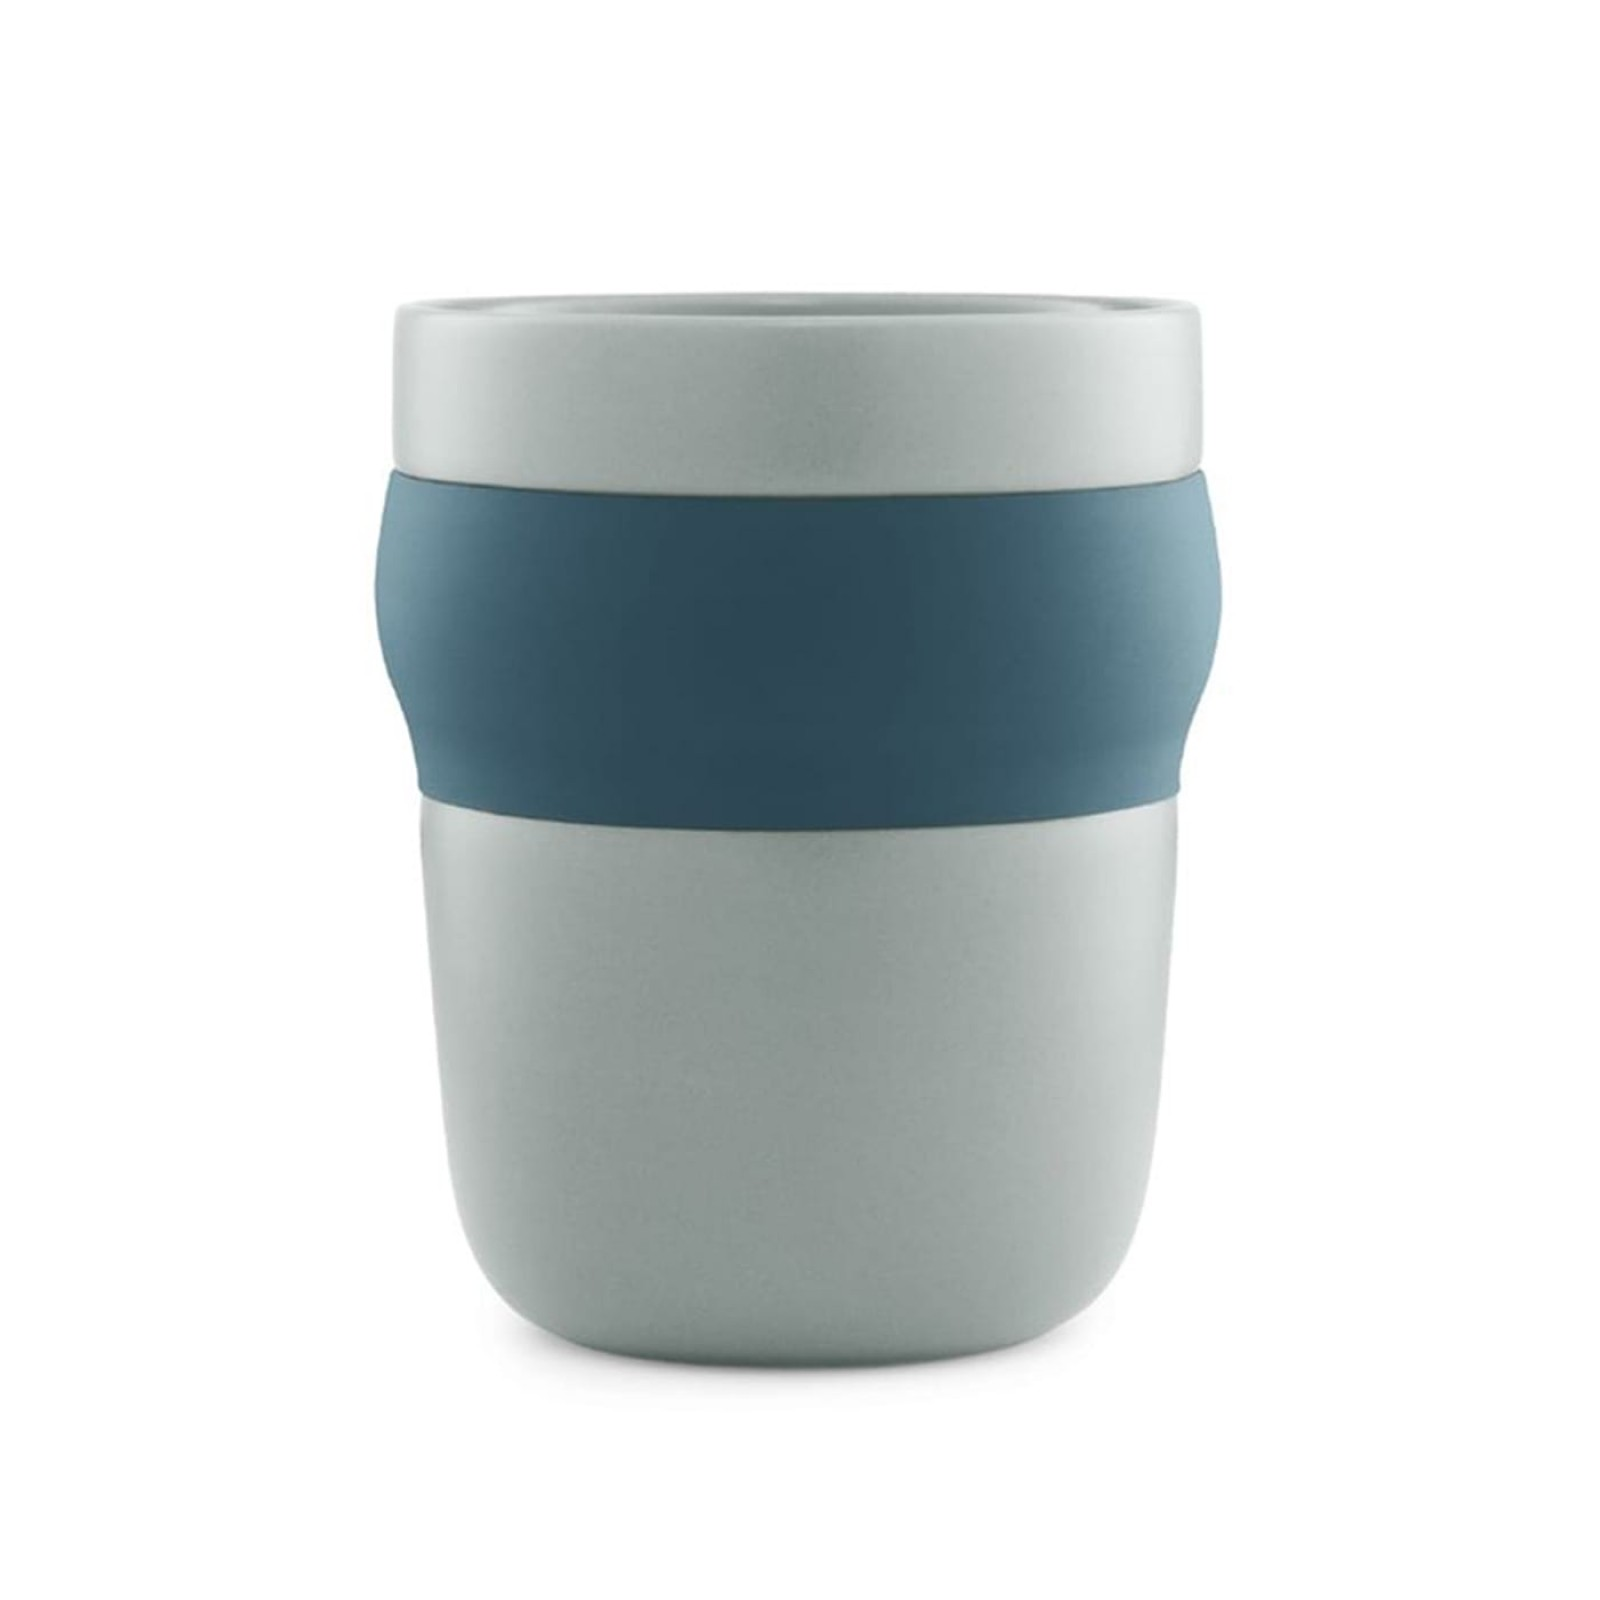 Obi Mug (Light Blue) - Normann Copenhagen